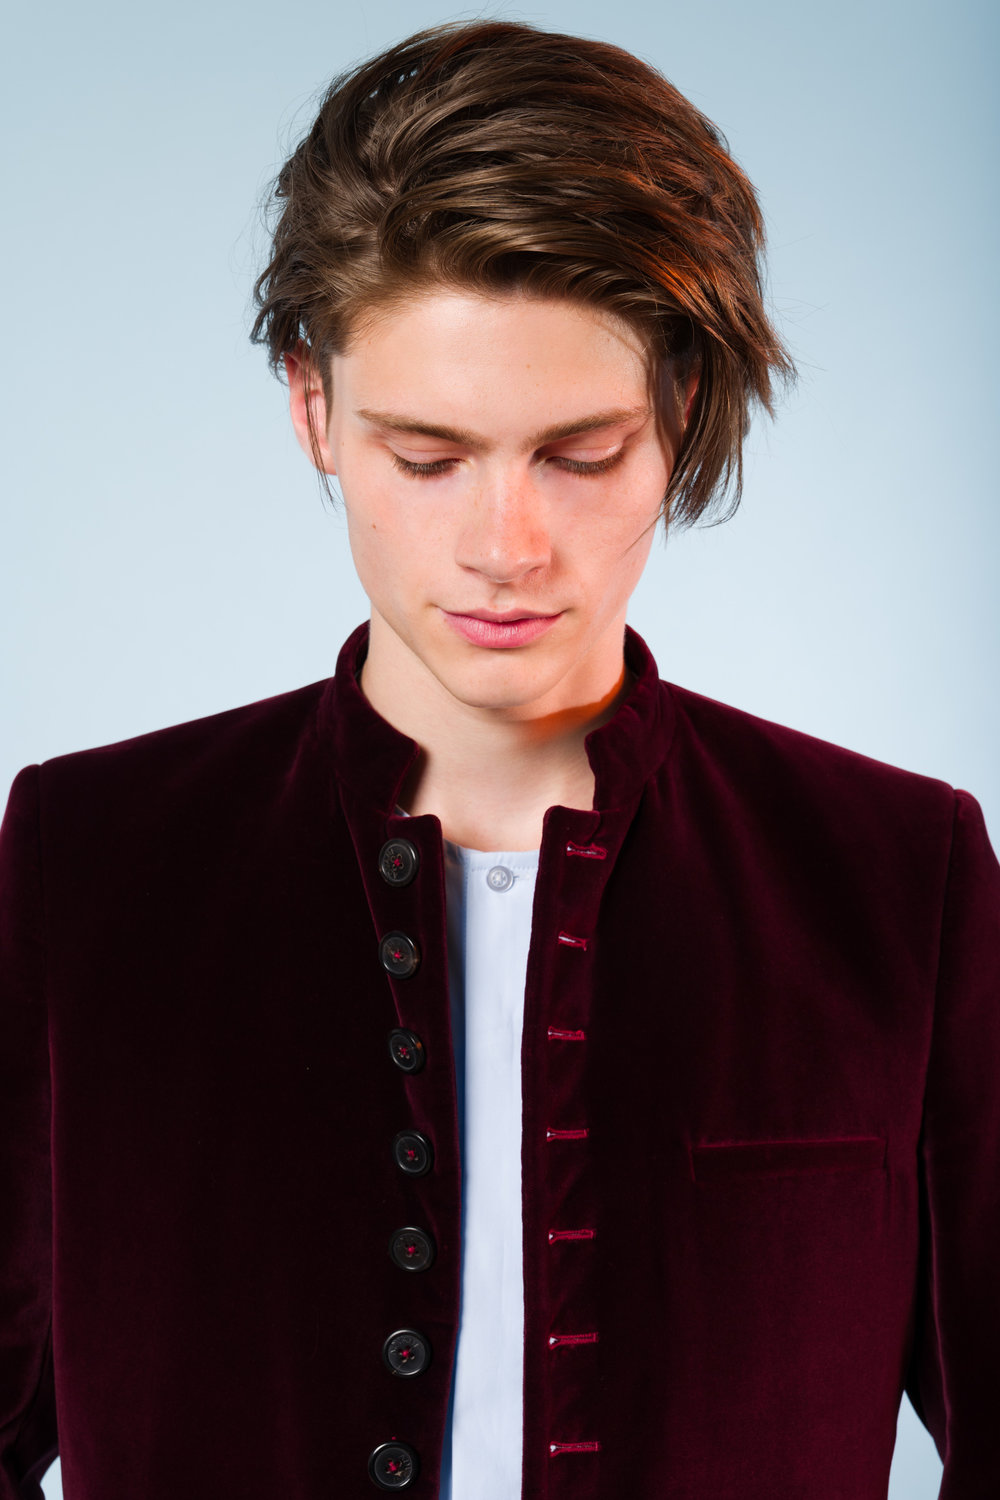 Nepal jacket burgundy velvet No Collar shirt